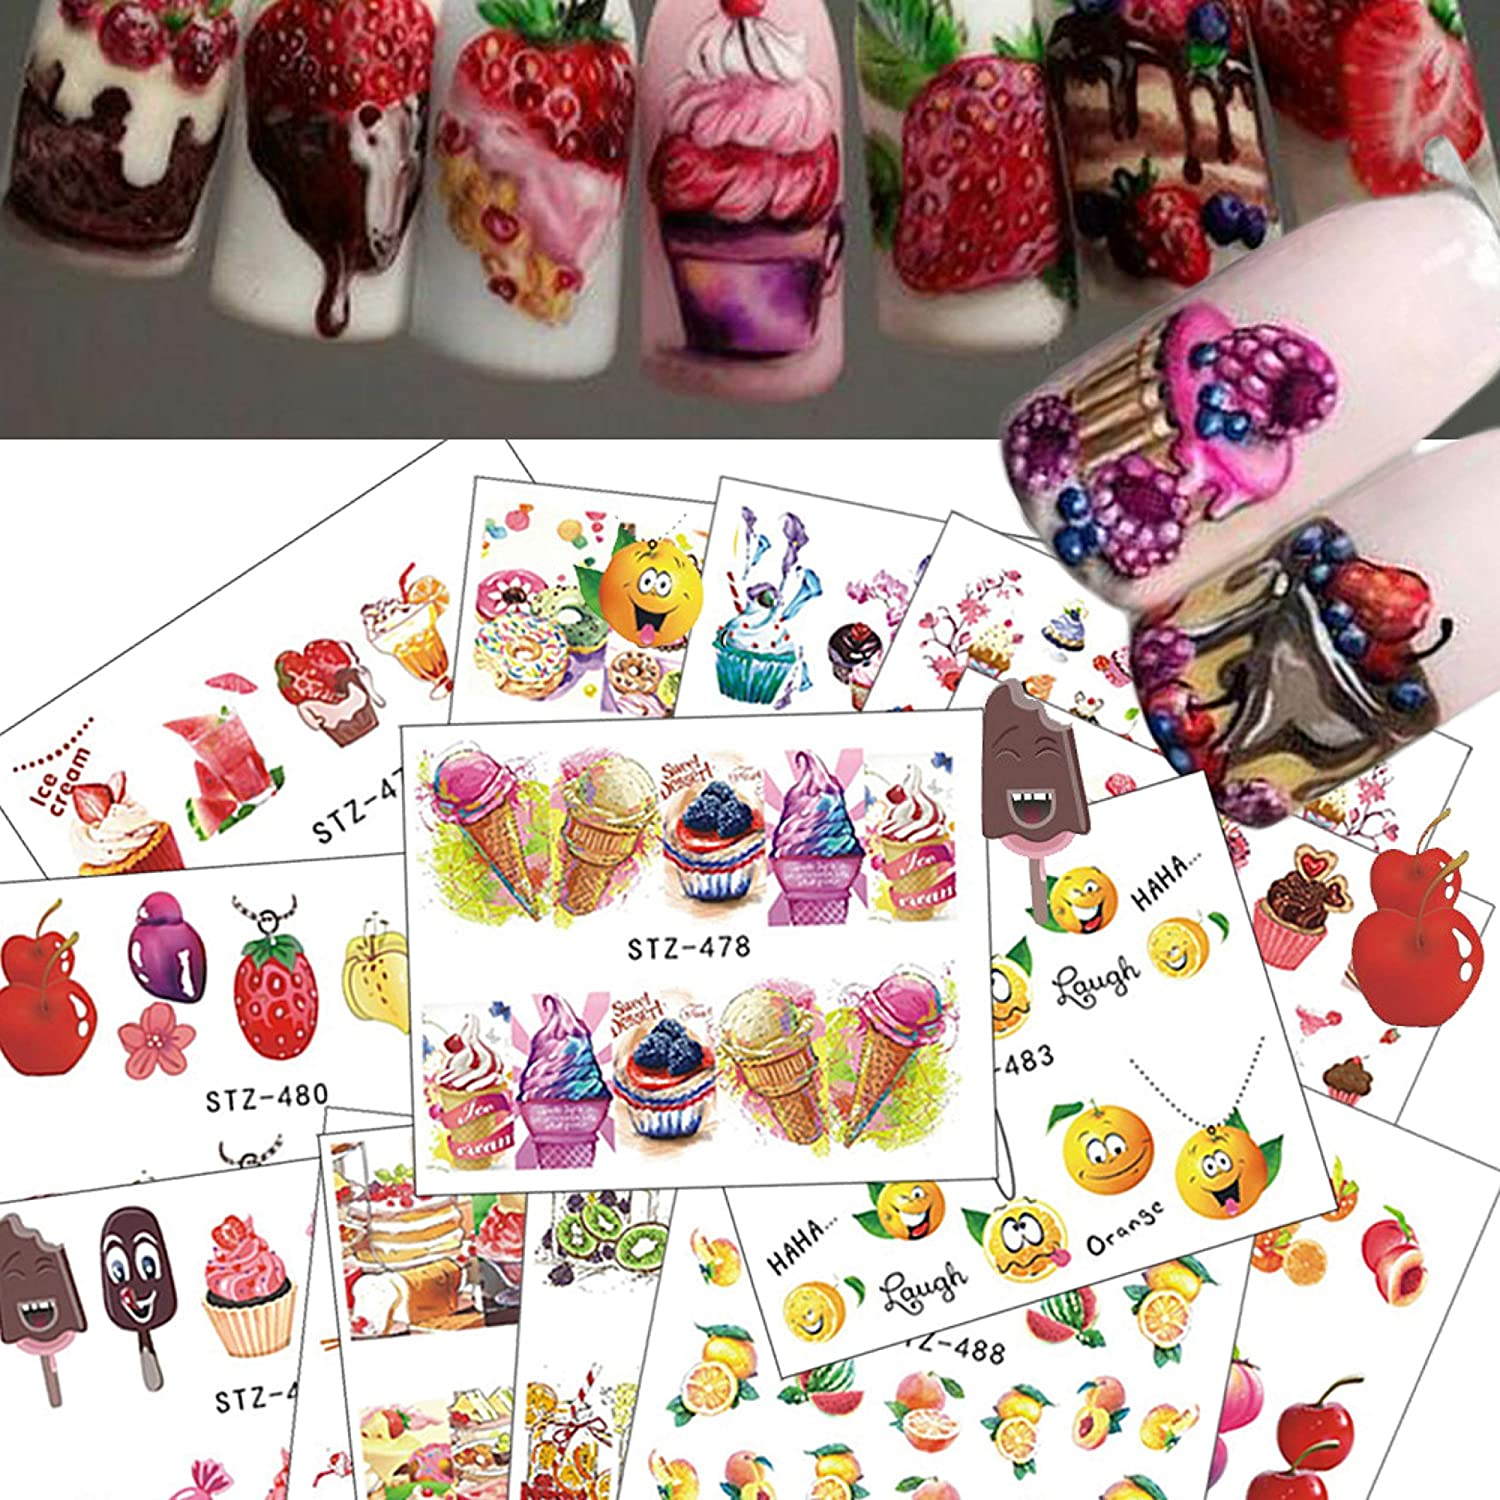 NAIL ANGEL 18 quality assurance Sheets Nail Art Ice Water Decals Cupcake Super sale period limited Ice-Cream